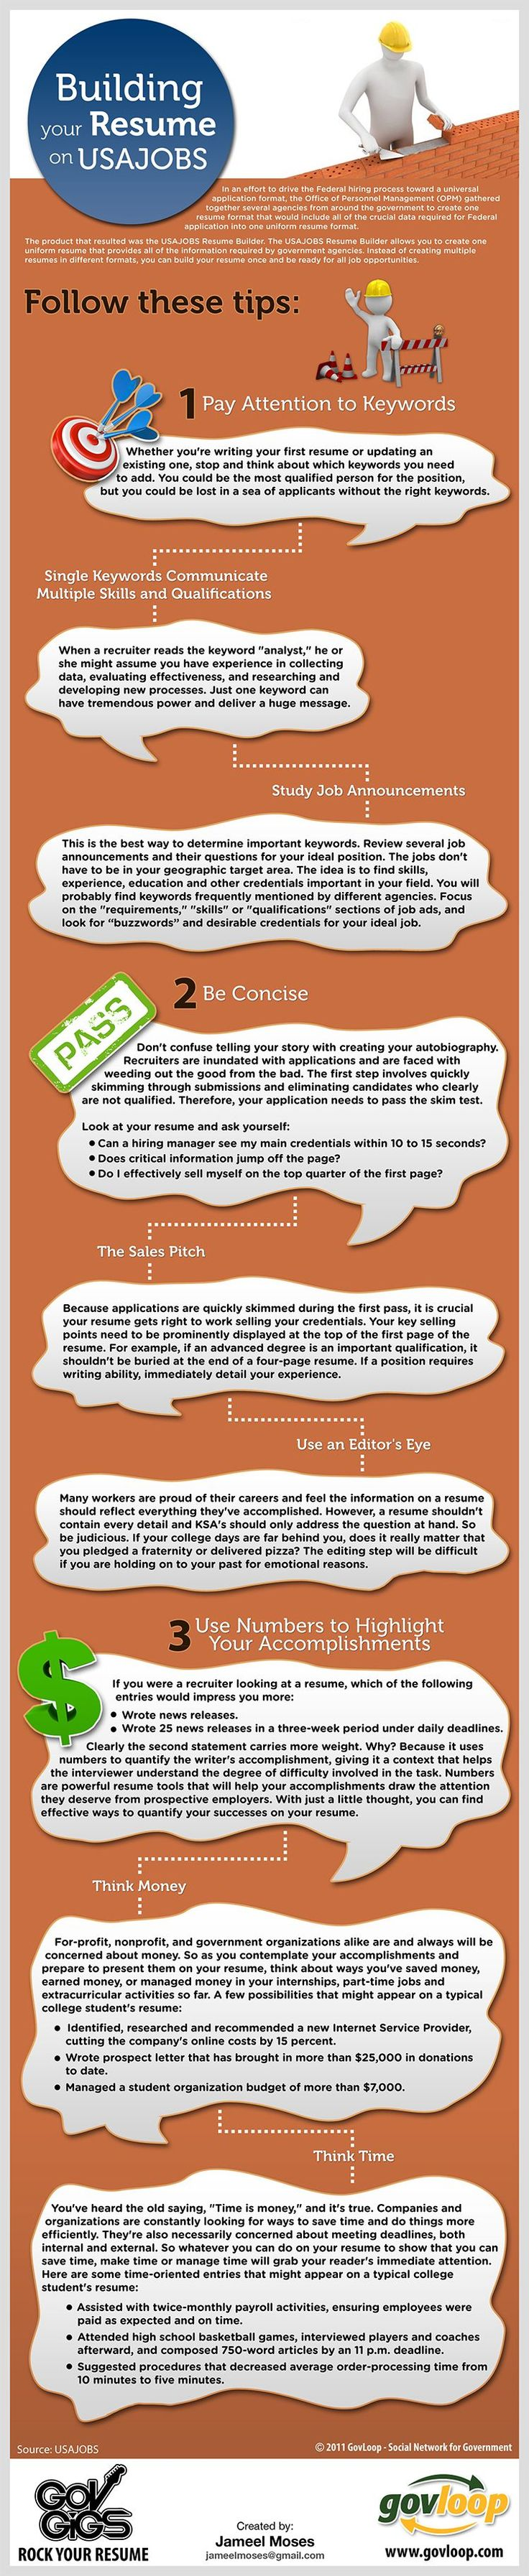 infographic Rock Your Resume USAJOBS Style Infograph